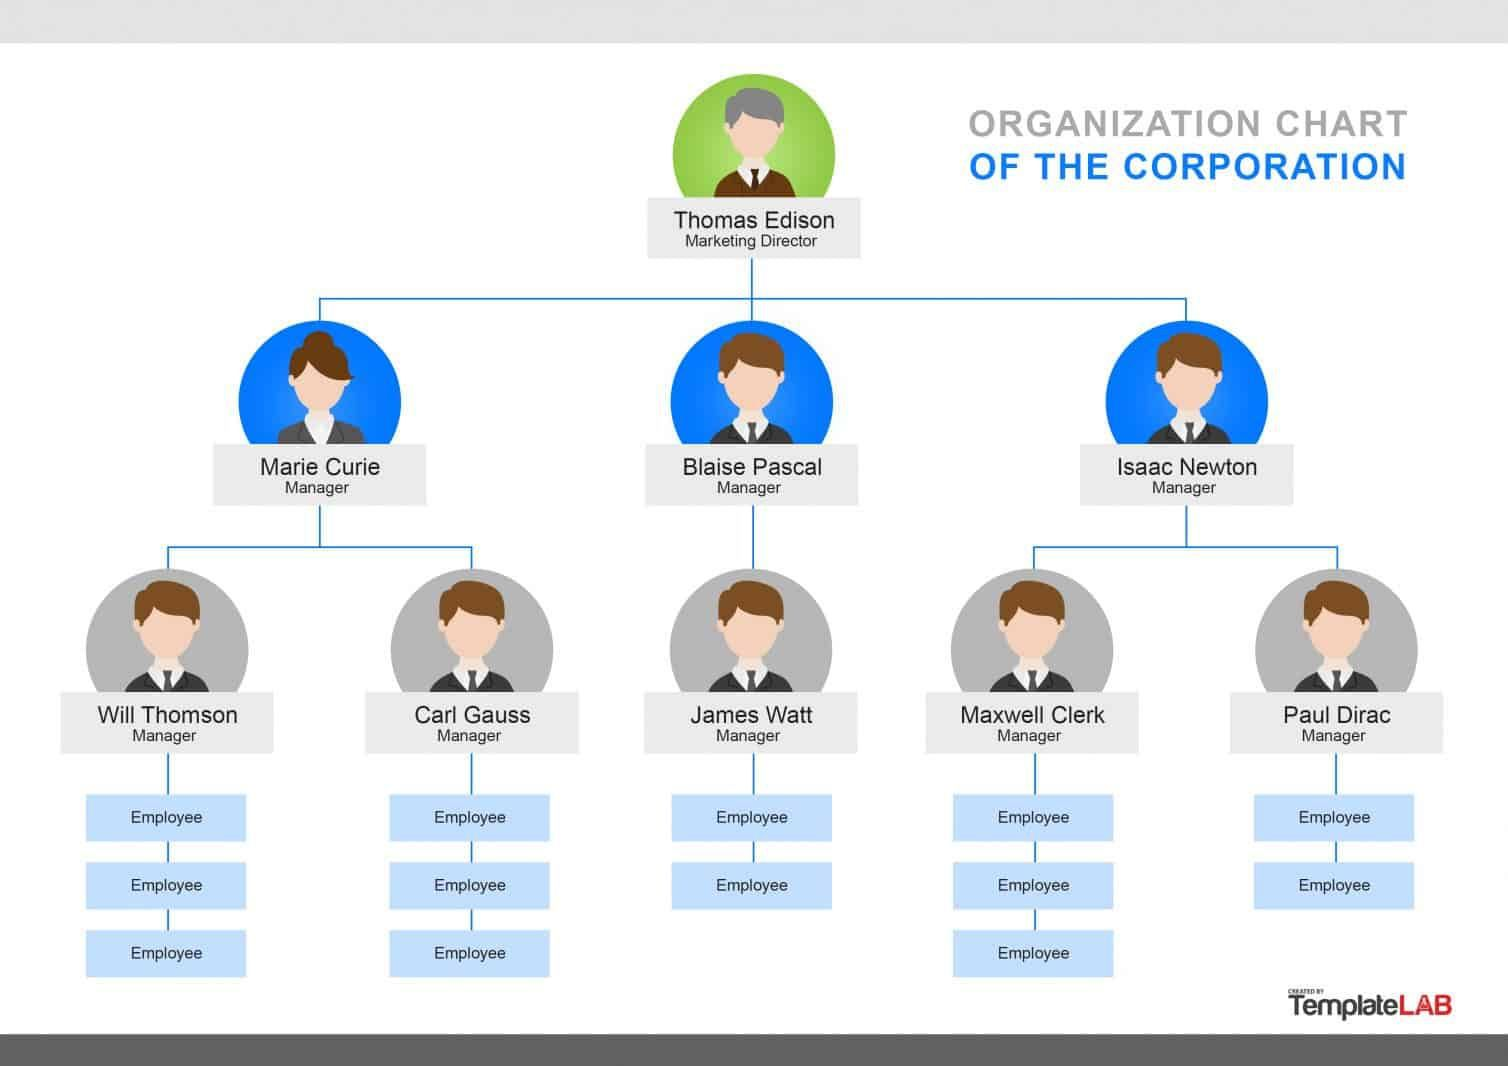 000 Singular Organizational Chart Template Word Concept  Simple Free Download 2013 2010Full